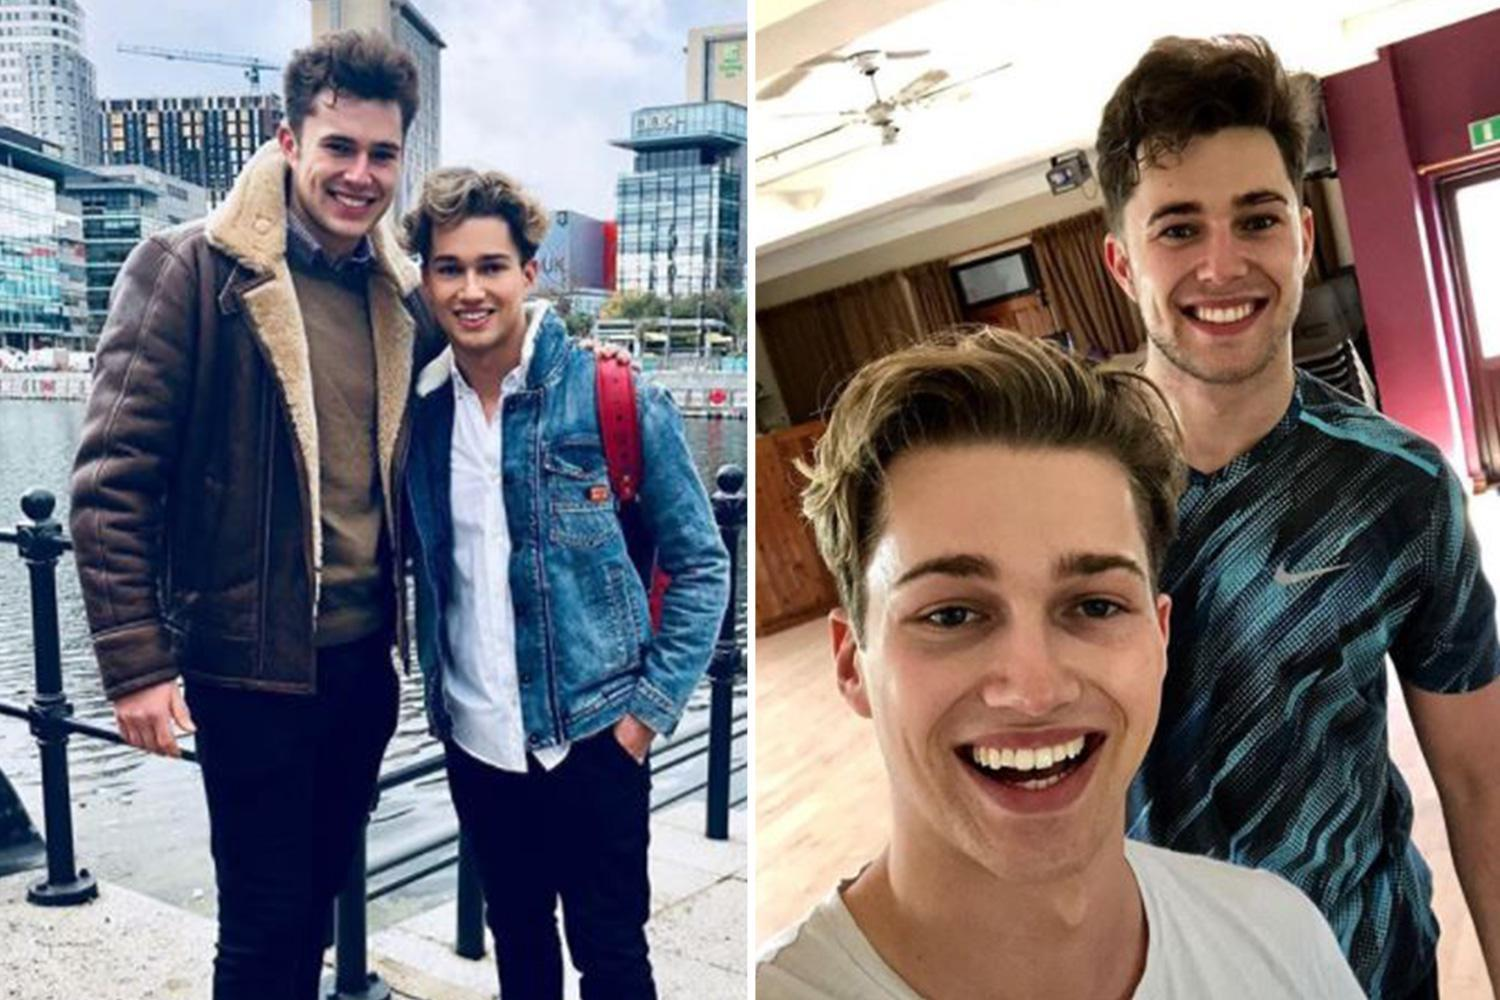 Strictly star AJ Pritchard's brother Curtis to undergo emergency surgery on his knee tomorrow after horrific nightclub attack